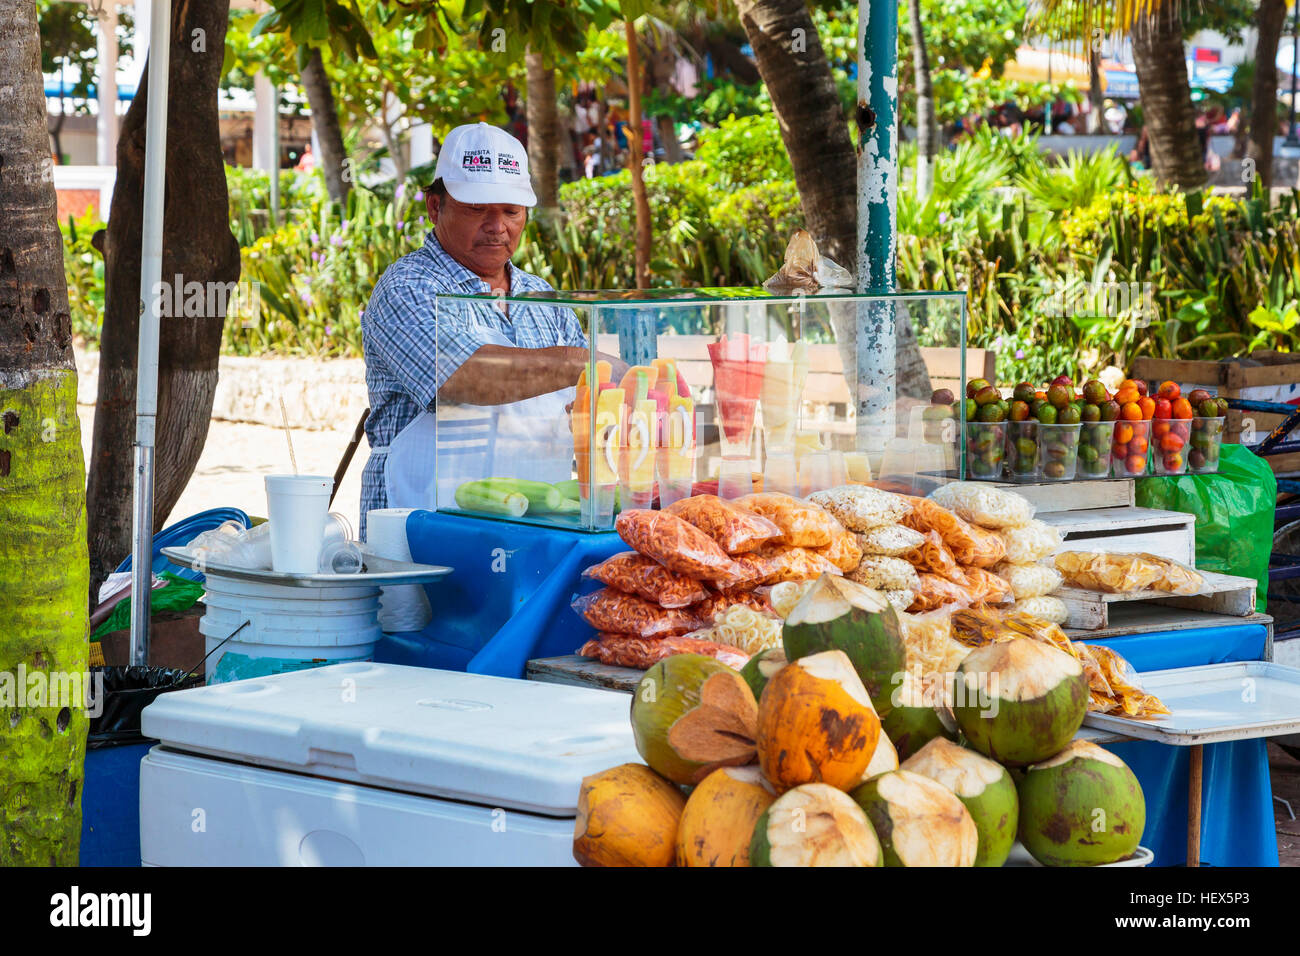 Man selling fresh fruit and corn snacks from a stall on 5th Avenue, Playa Del Carmen, Riviera Maya, Mexico - Stock Image